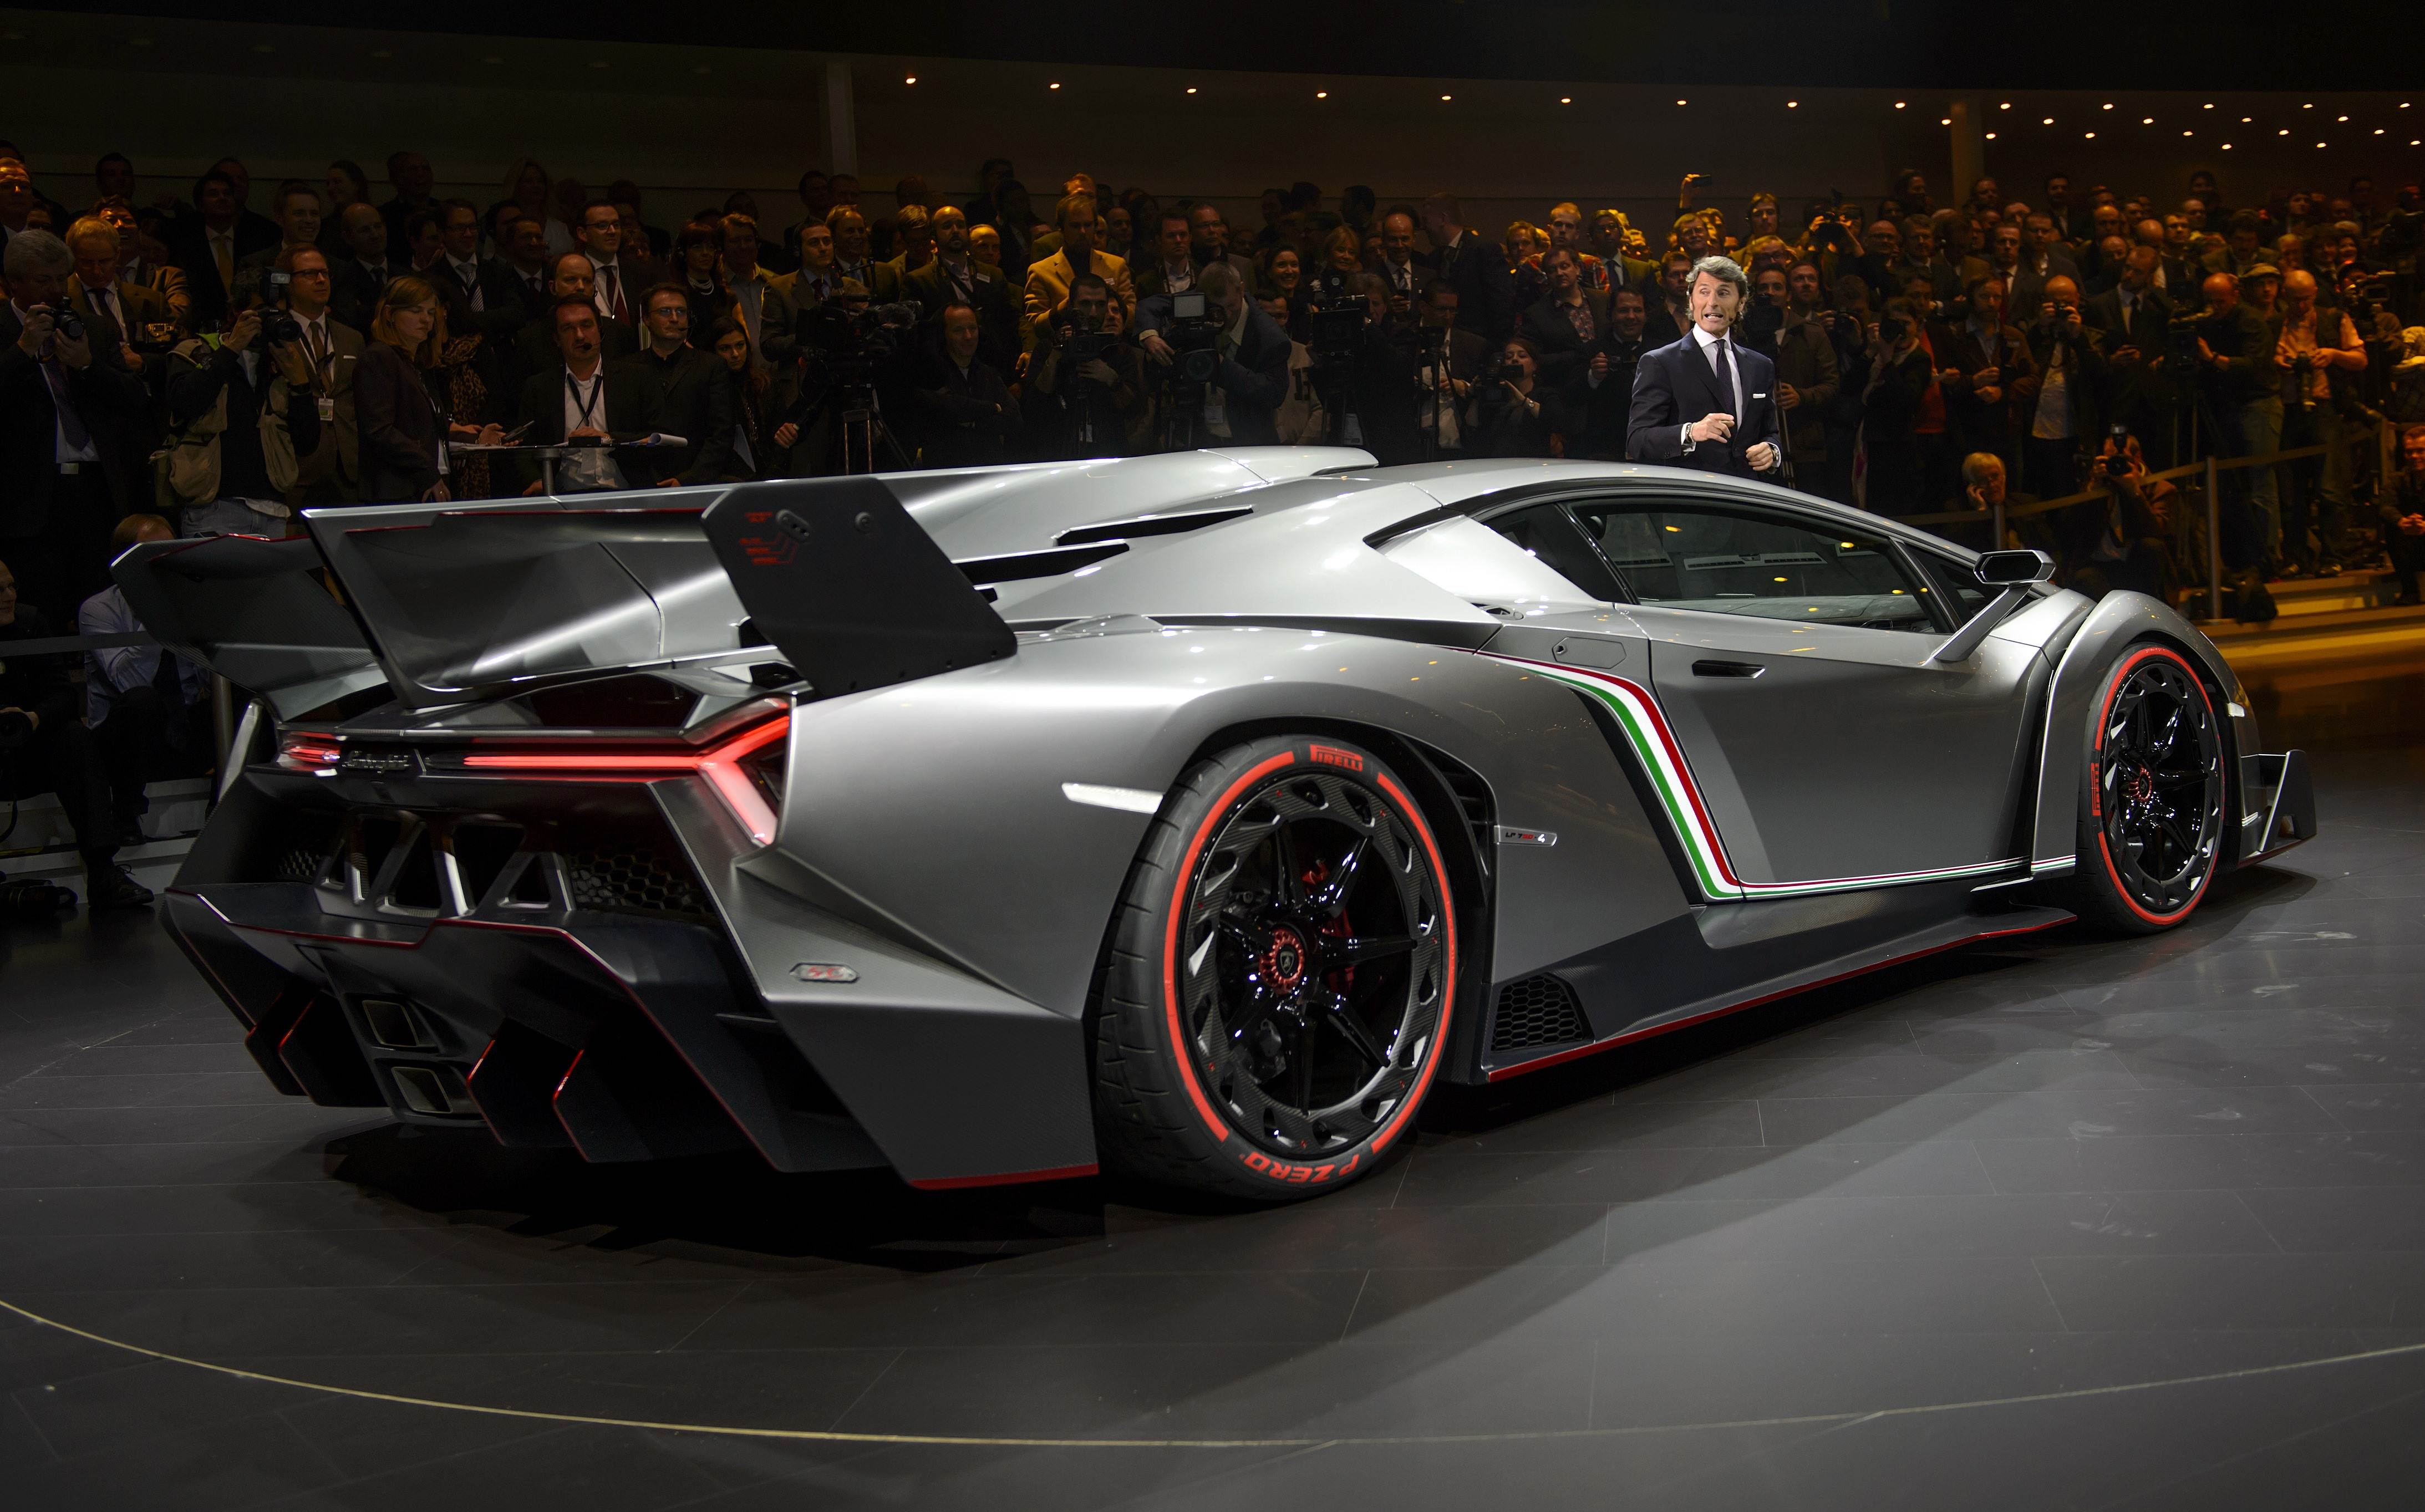 The new Lamborghini Veneno is introcuded by CEO and Chairman Stephan Winkelmann during a preview of Volkswagen Group on March 4, 2013 ahead of the Geneva Car Show in Geneva. AFP PHOTO / FABRICE COFFRINI